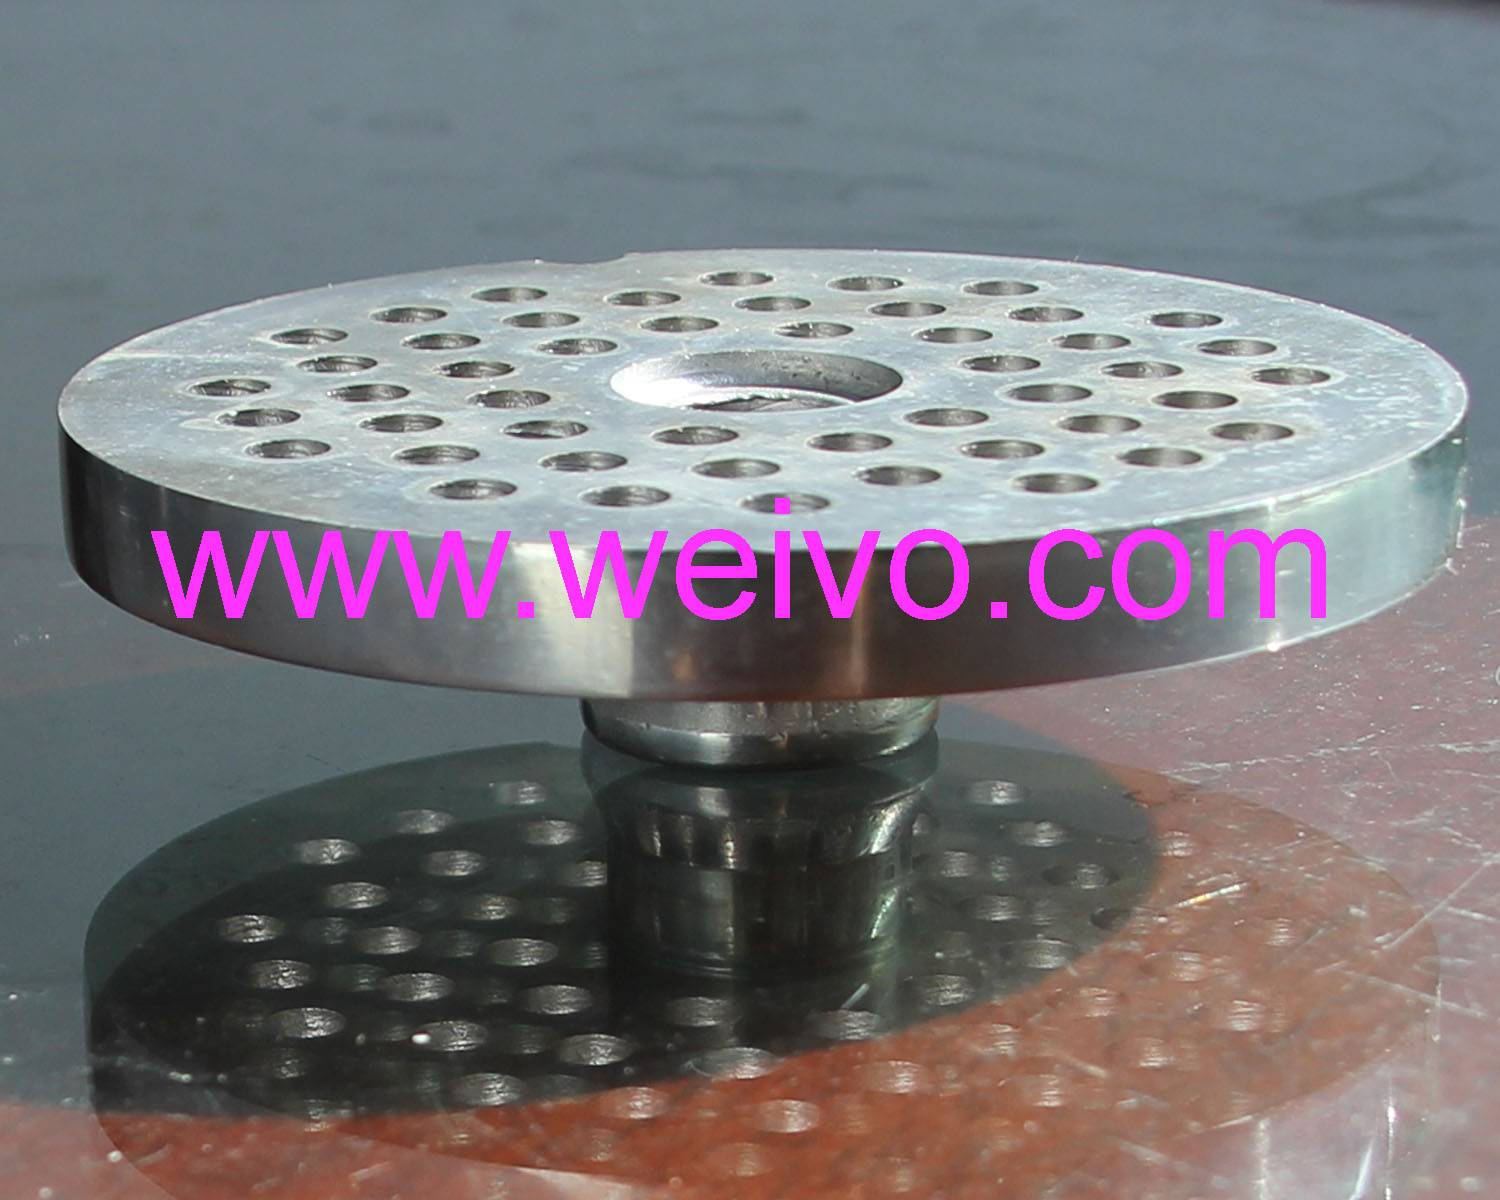 32# 60mm Meat Chopper Blades/ Meat Grinder cutting plates with hub/ Meat chopper knife and plate